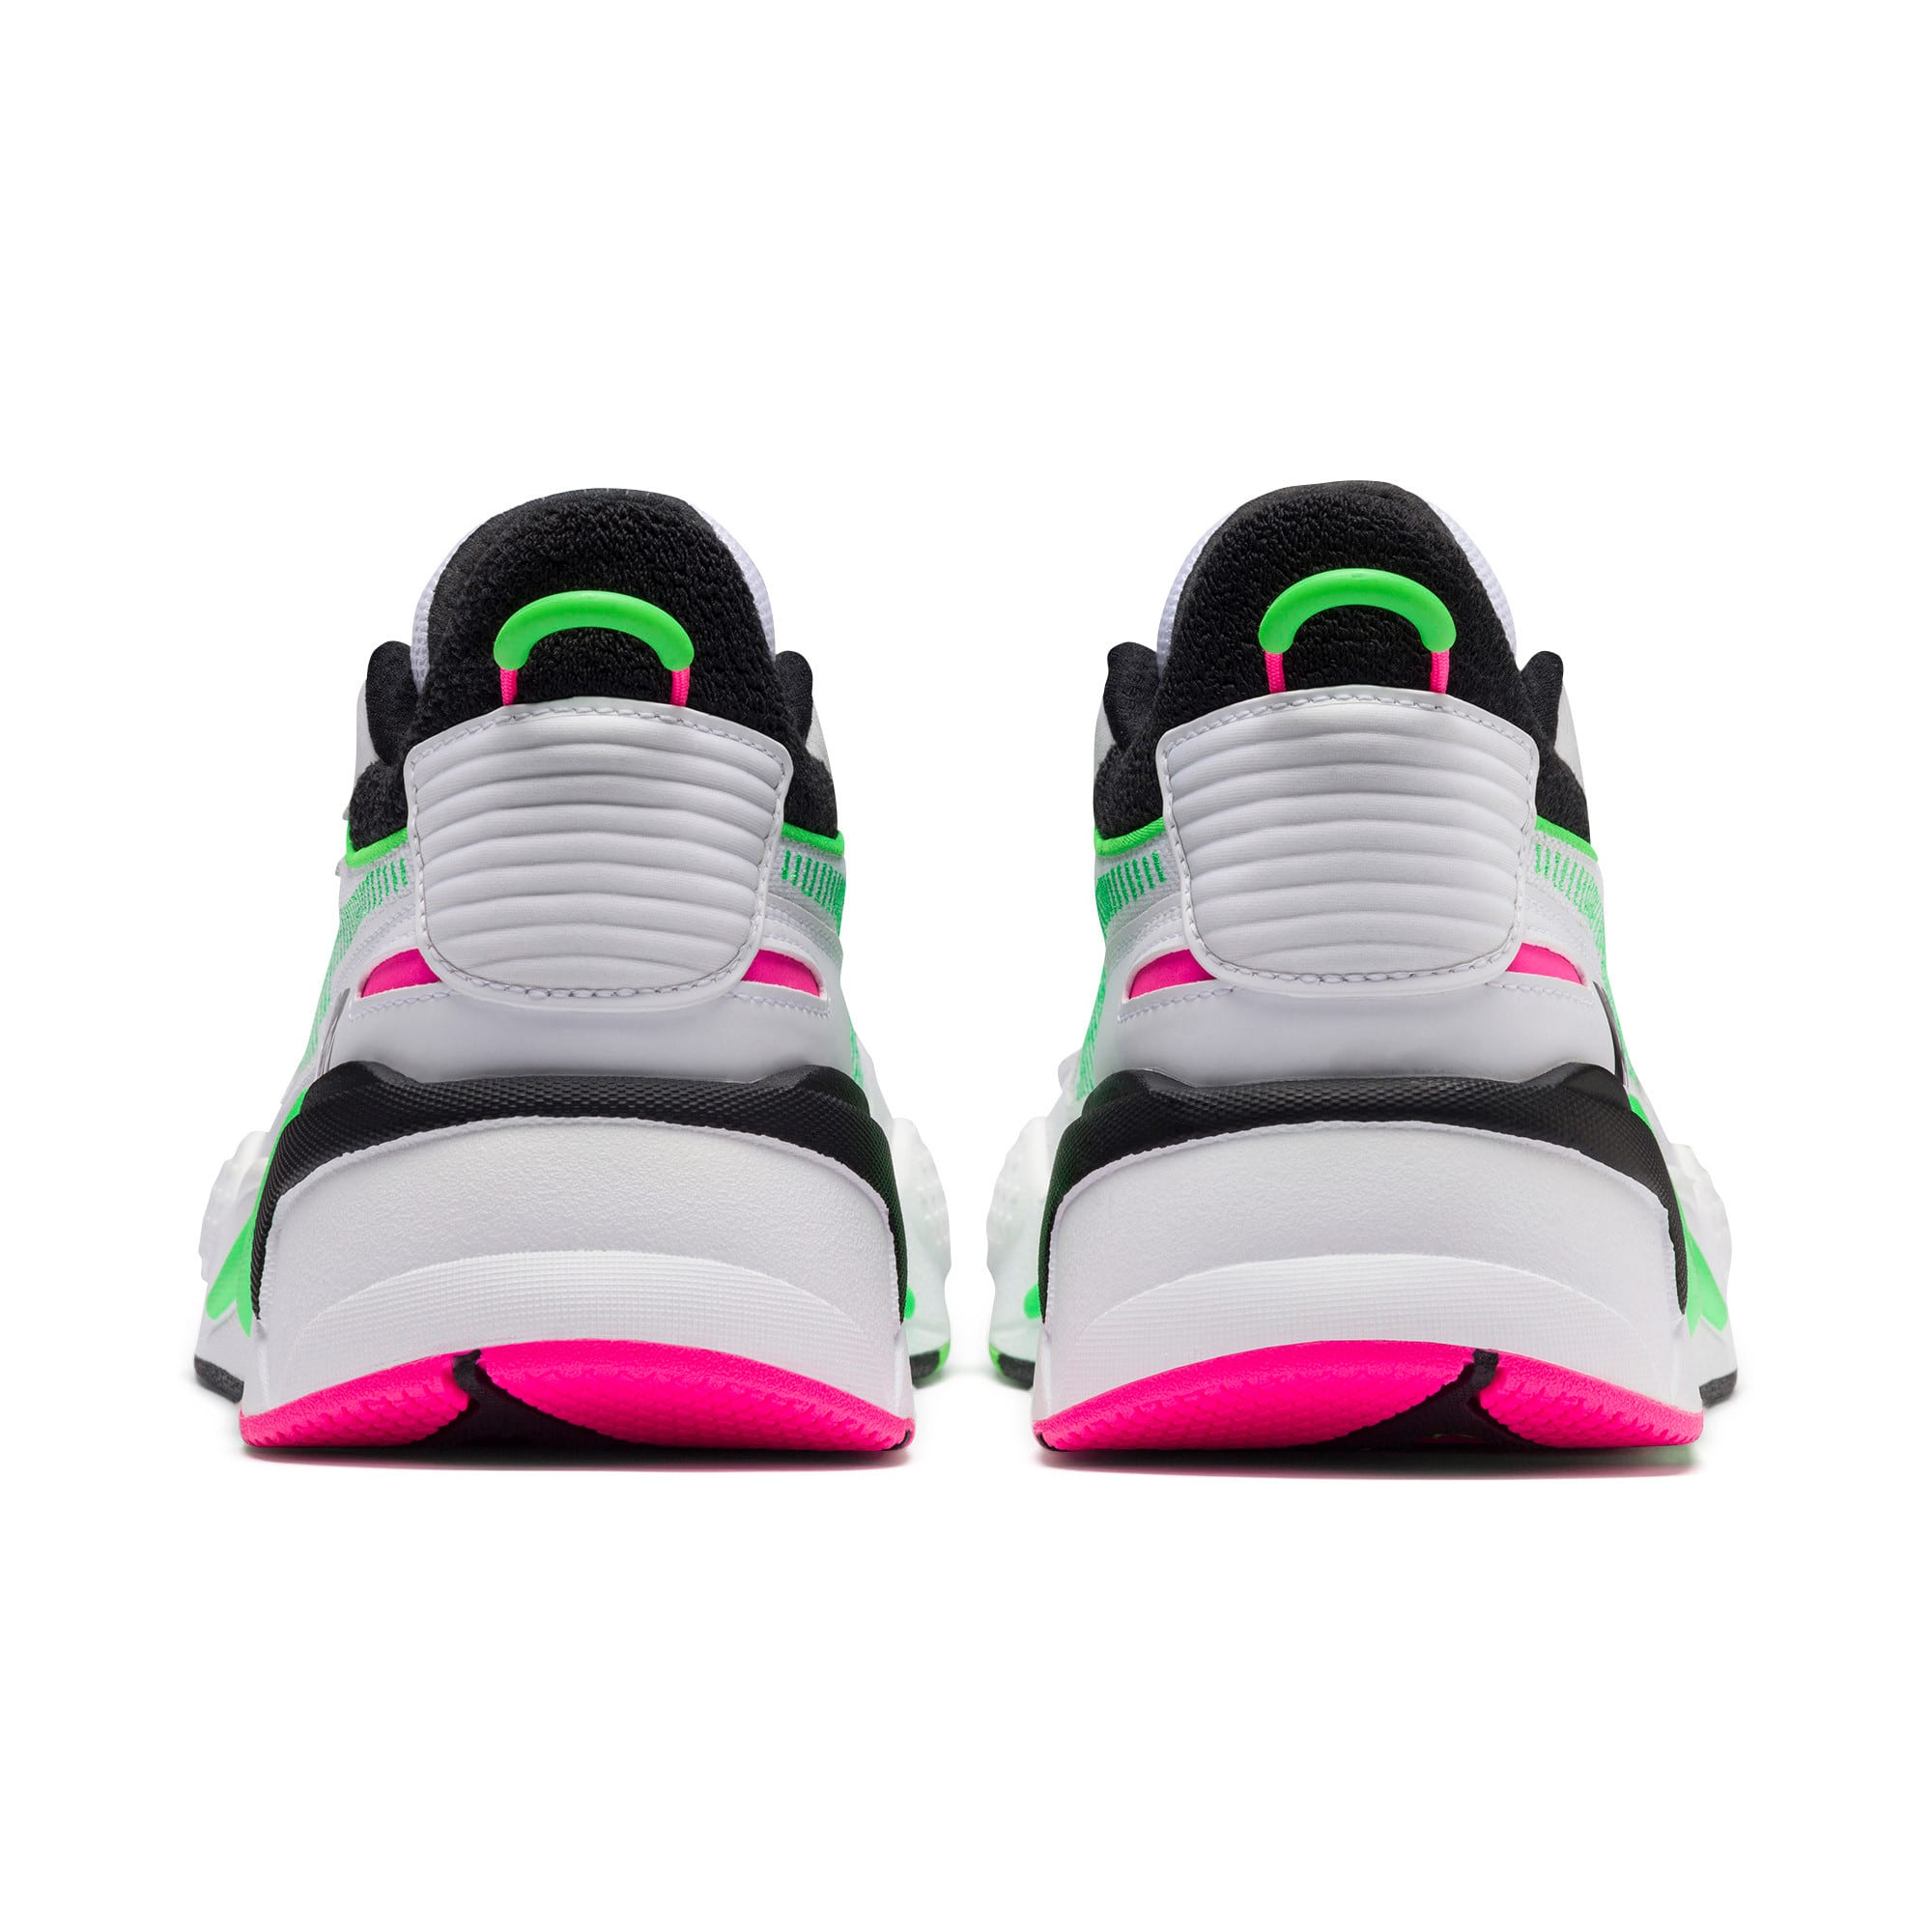 Thumbnail 3 of PUMA x MTV RS-X Tracks Yo! Raps Europe Sneaker, Puma White-802 C Fluro Green, medium